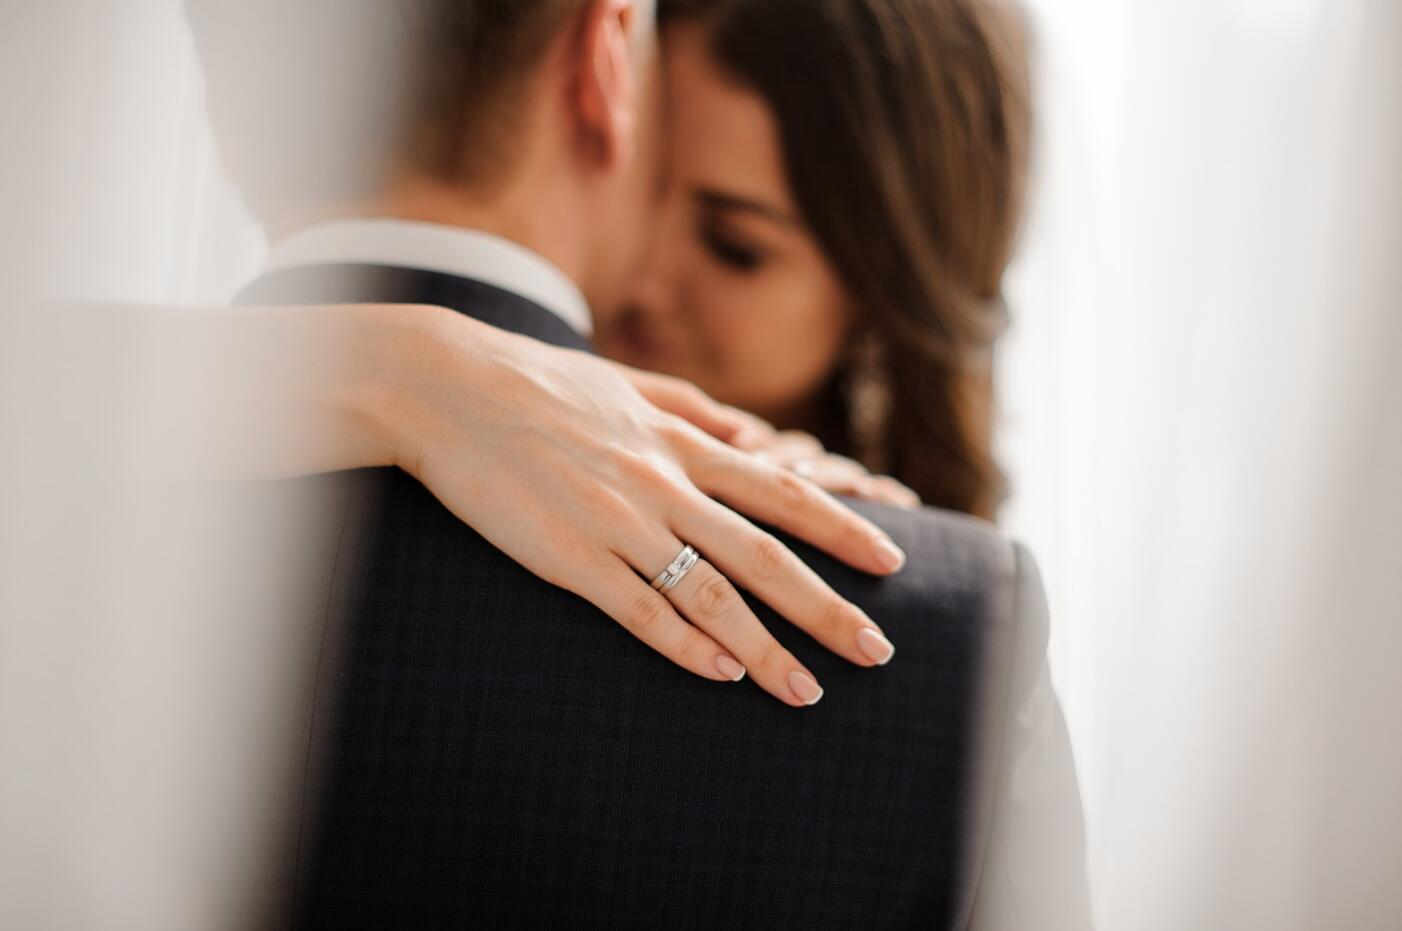 Engagement Ring Diamond Engagement Ring Shopping 101: 5 Things To Know